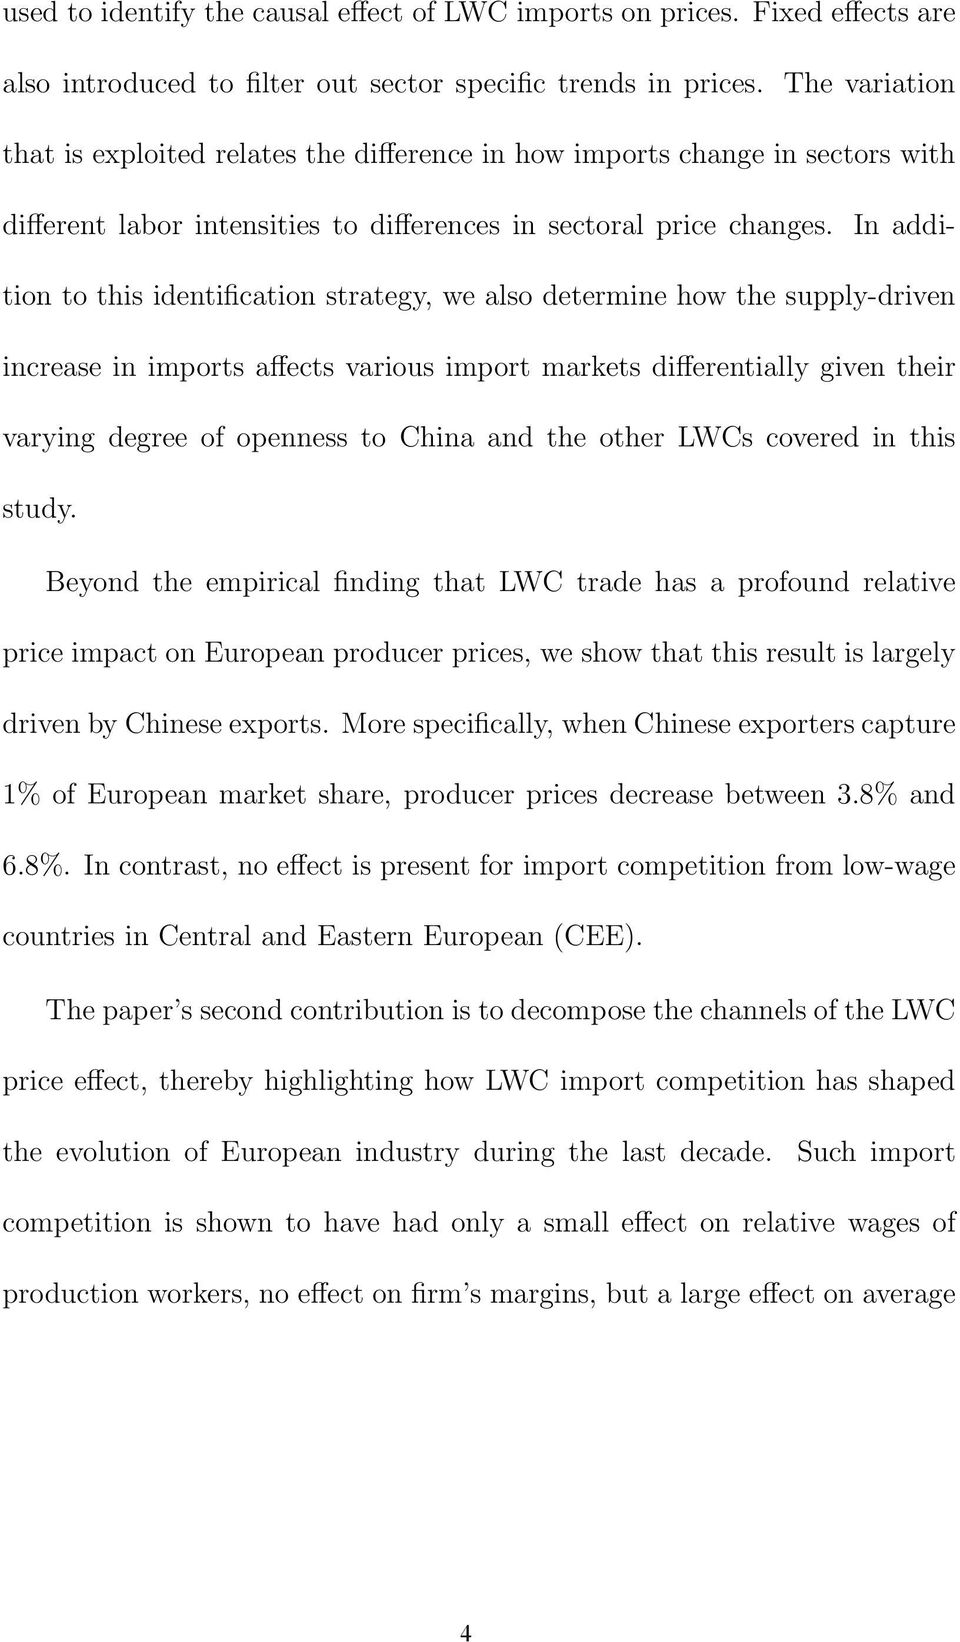 In addition to this identification strategy, we also determine how the supply-driven increase in imports affects various import markets differentially given their varying degree of openness to China